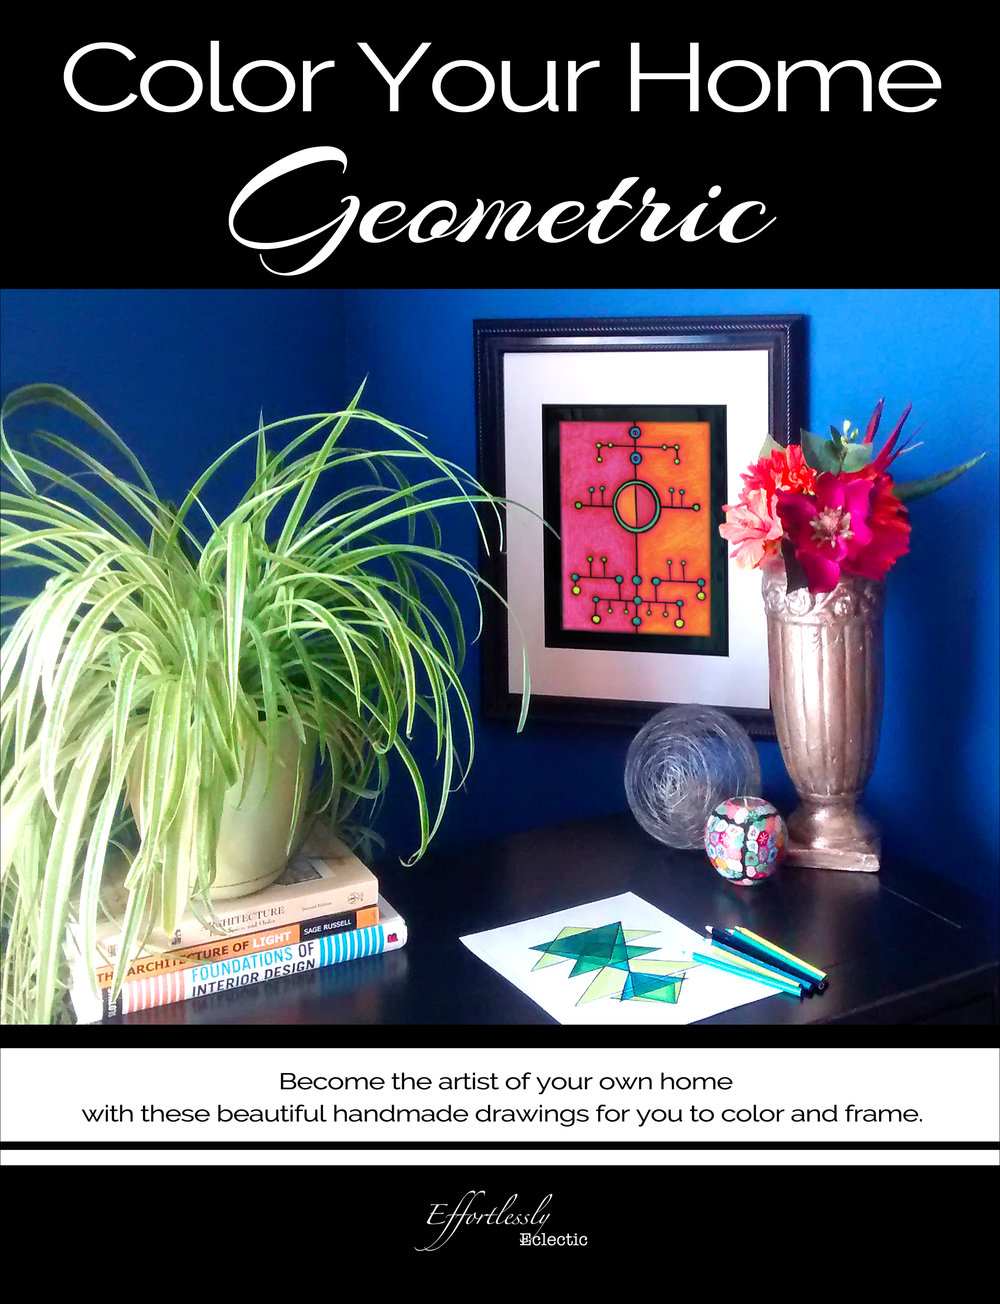 DIY Home Decor Book / Adult Coloring Book - Color Your Home Geometric - by Stacey Taylor of Effortlessly Eclectic